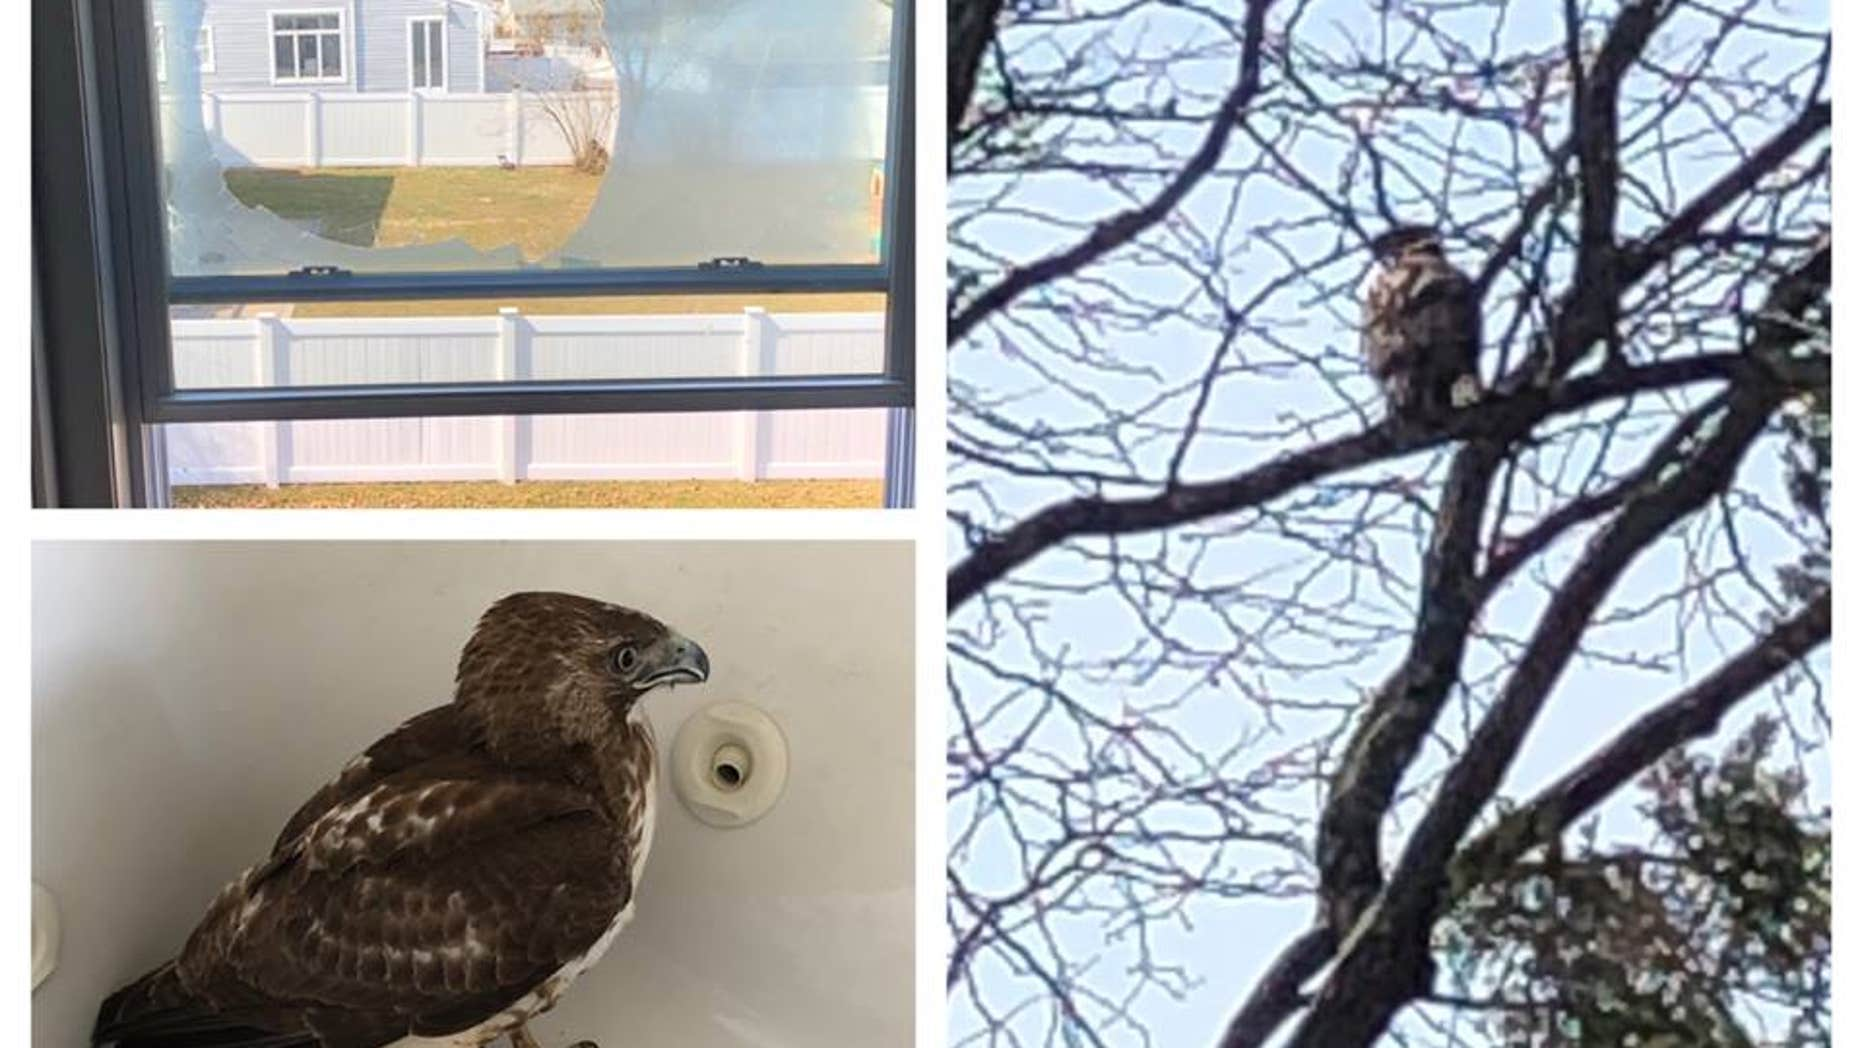 A hawk took flight this week straight into a New Jersey home and wound up in an unusual place, police said.